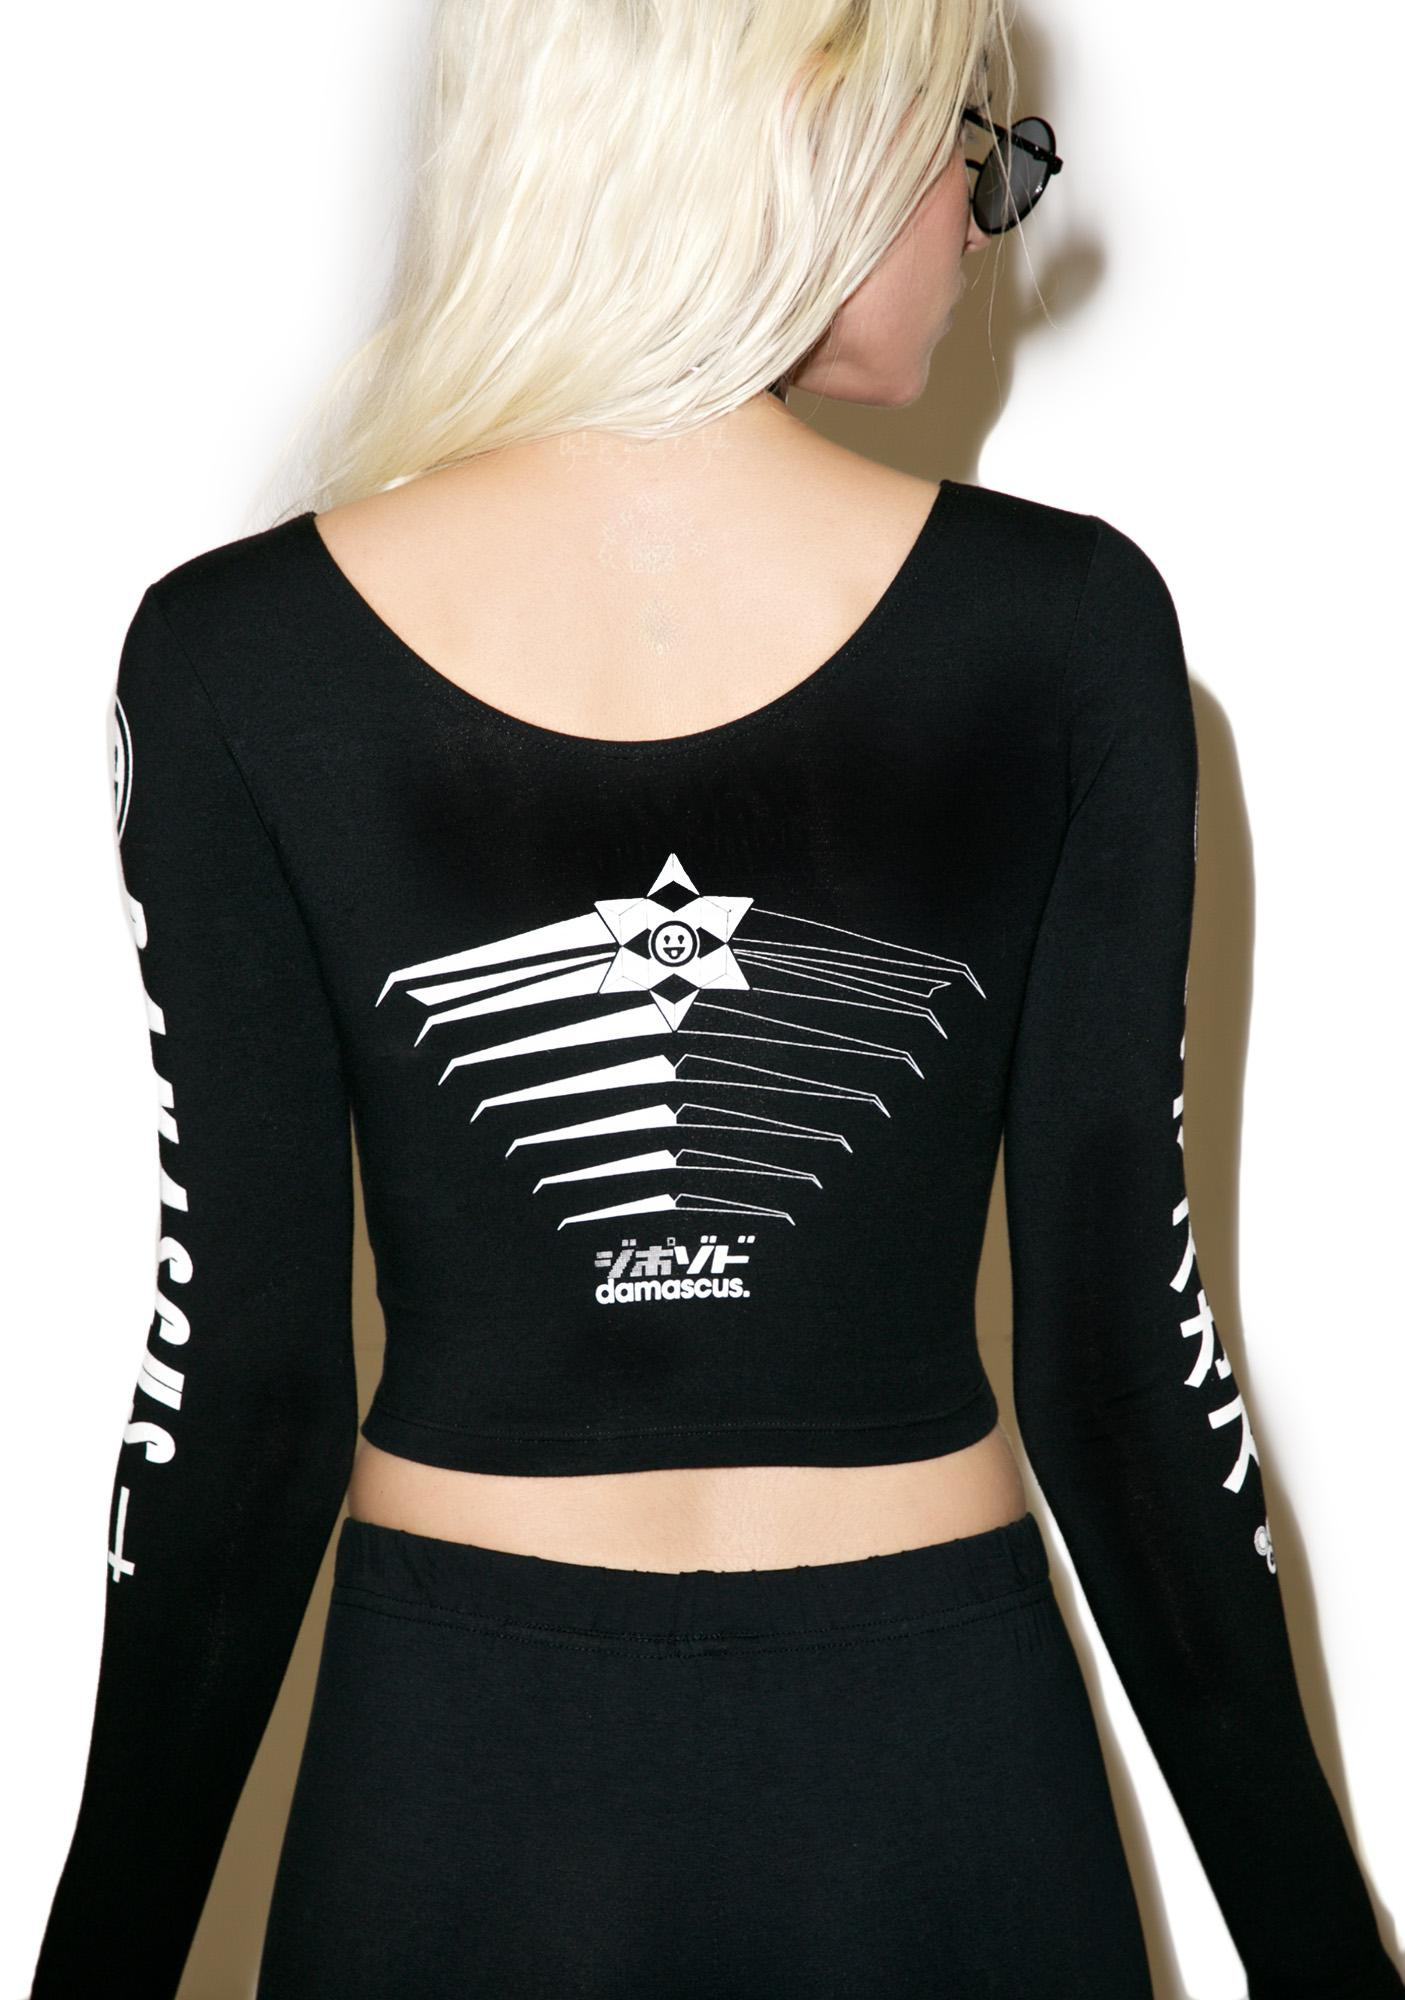 Damascus Trip Long Sleeve Crop Top